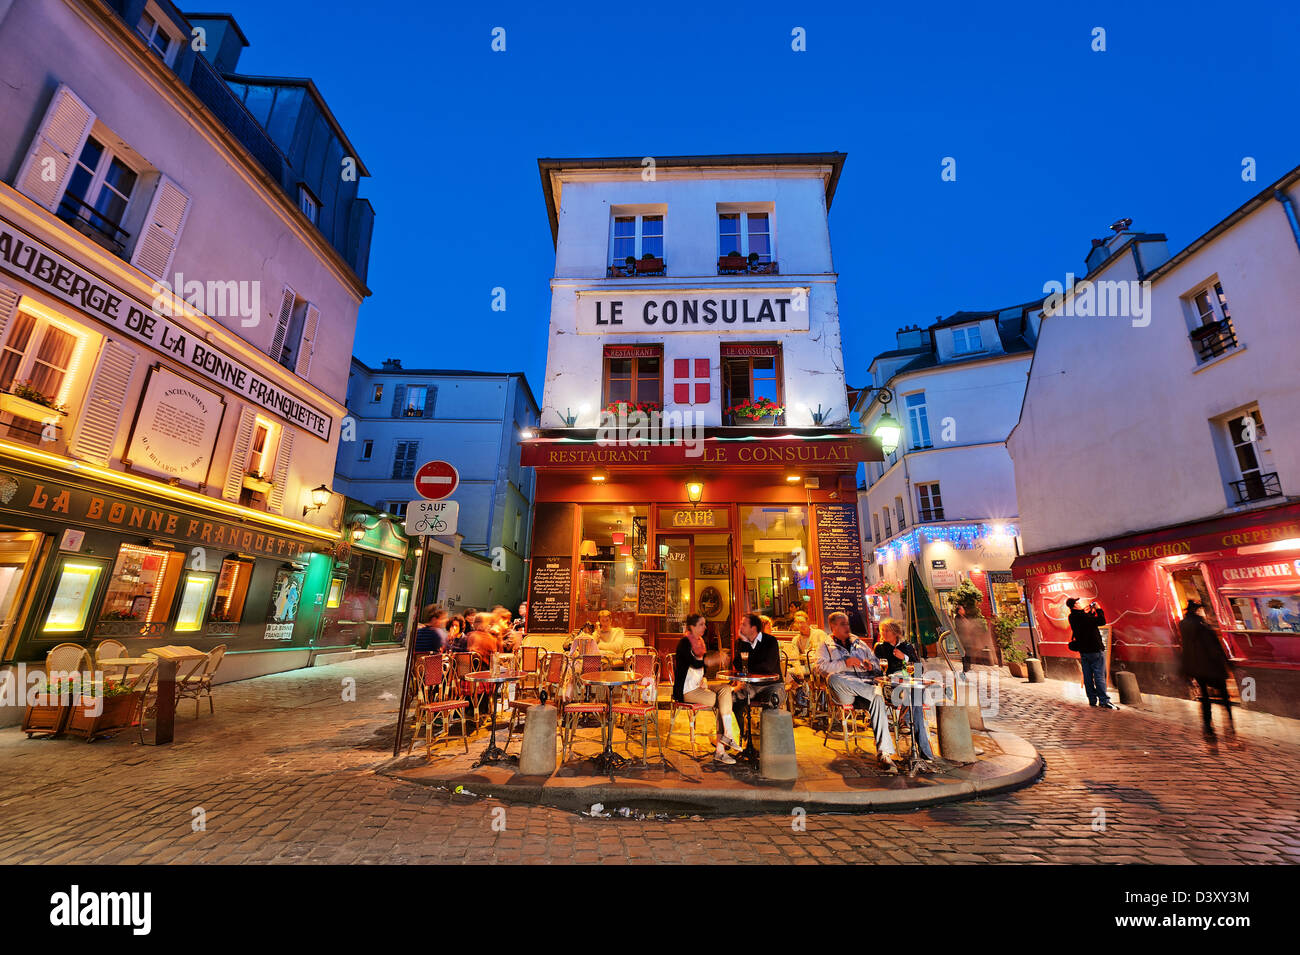 people enjoying a drink at Restaurant and café le Consulat, Montmartre, Paris, France - Stock Image